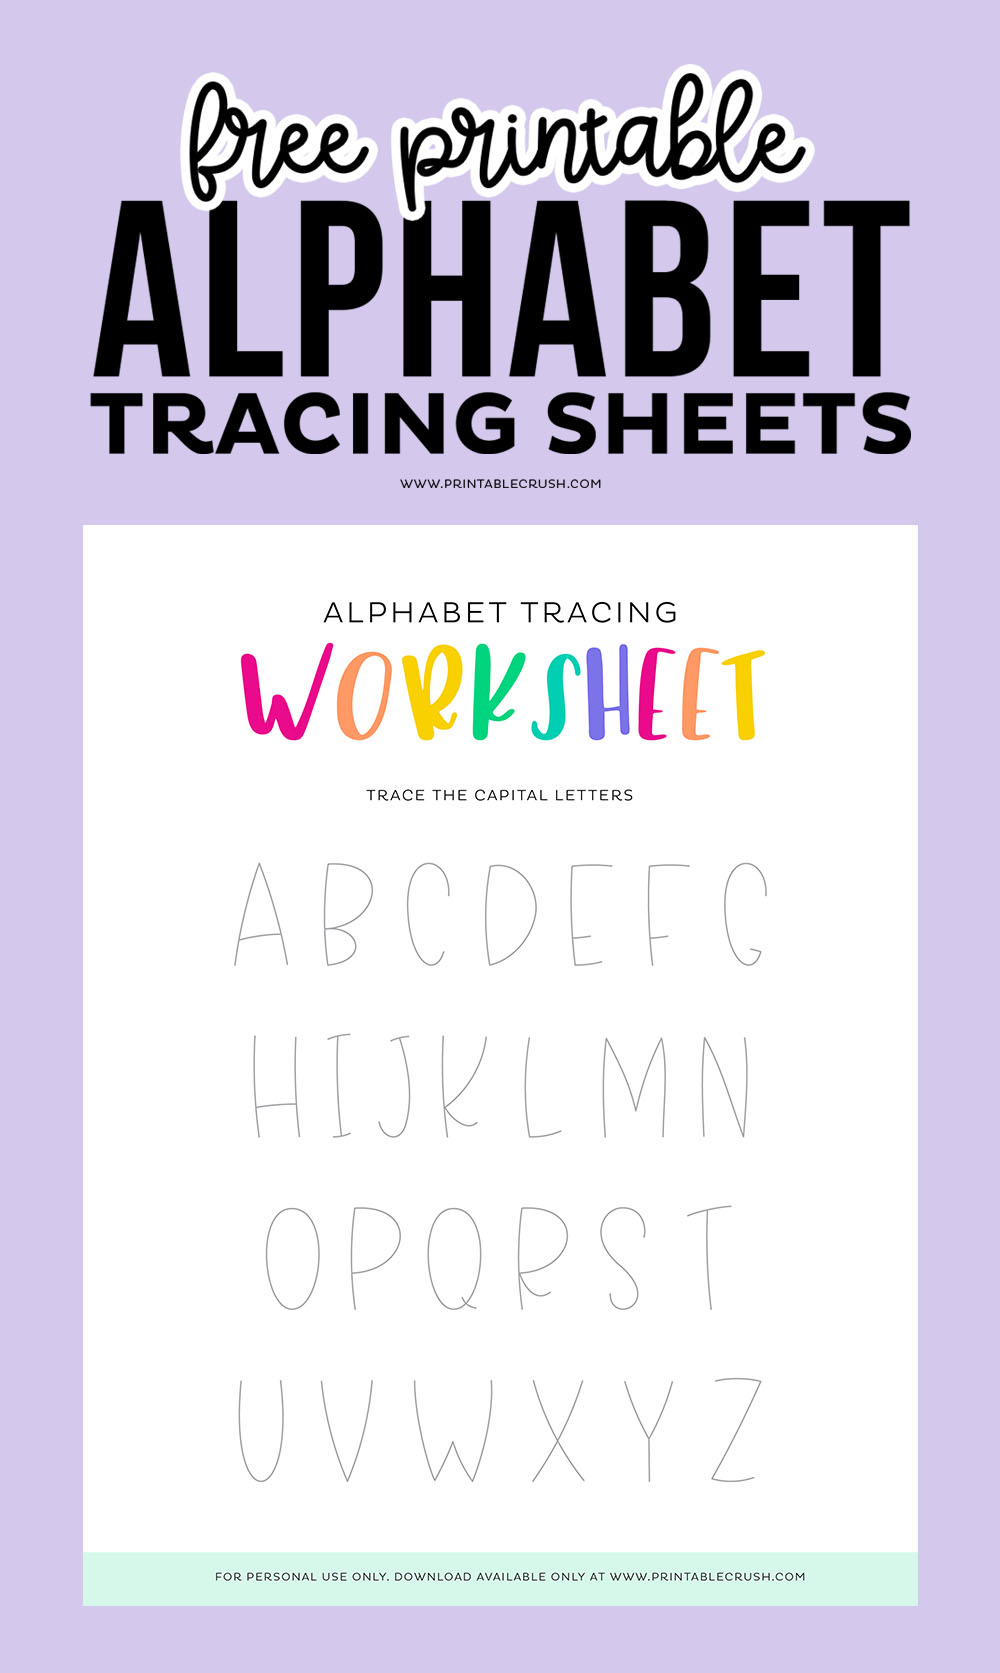 Letter Tracing Worksheets for Early Education - Alphabet Practice for Preschool - Alphabet Practice for Kindergarten - Printable Crush